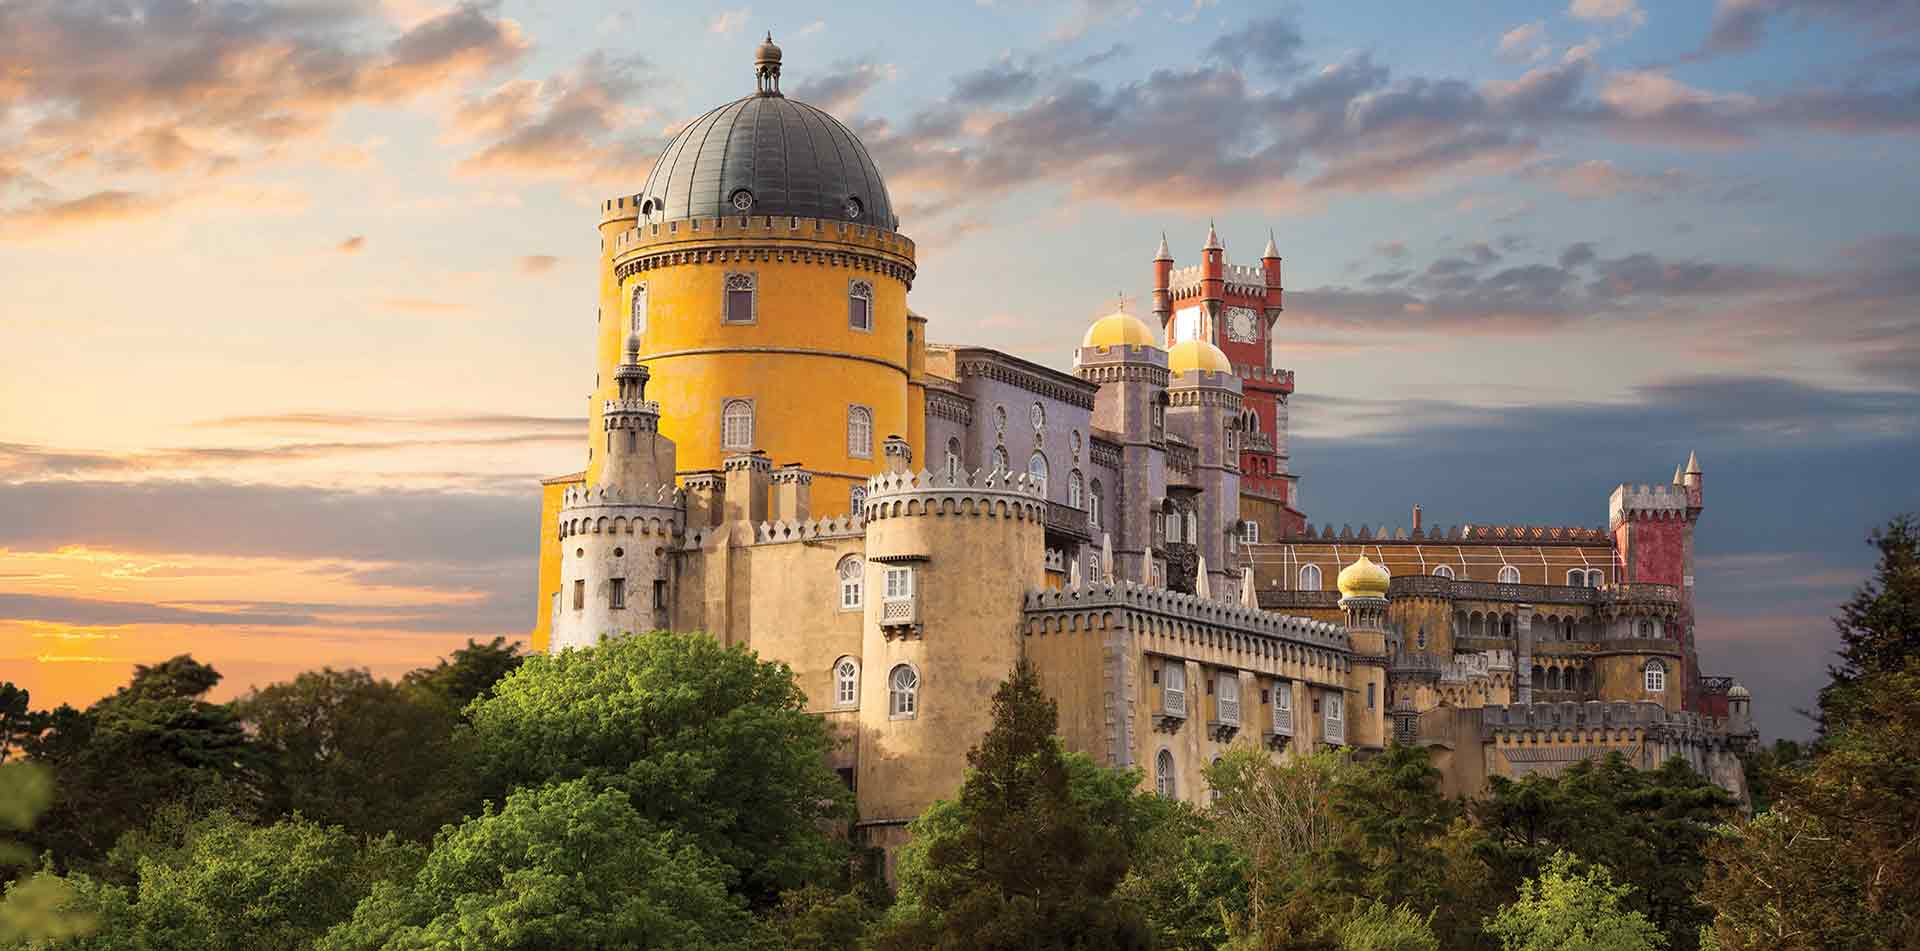 Europe Portugal Sintra-Cascais Natural Park colorful Romanticism style National Palace of Pena - luxury vacation destinations